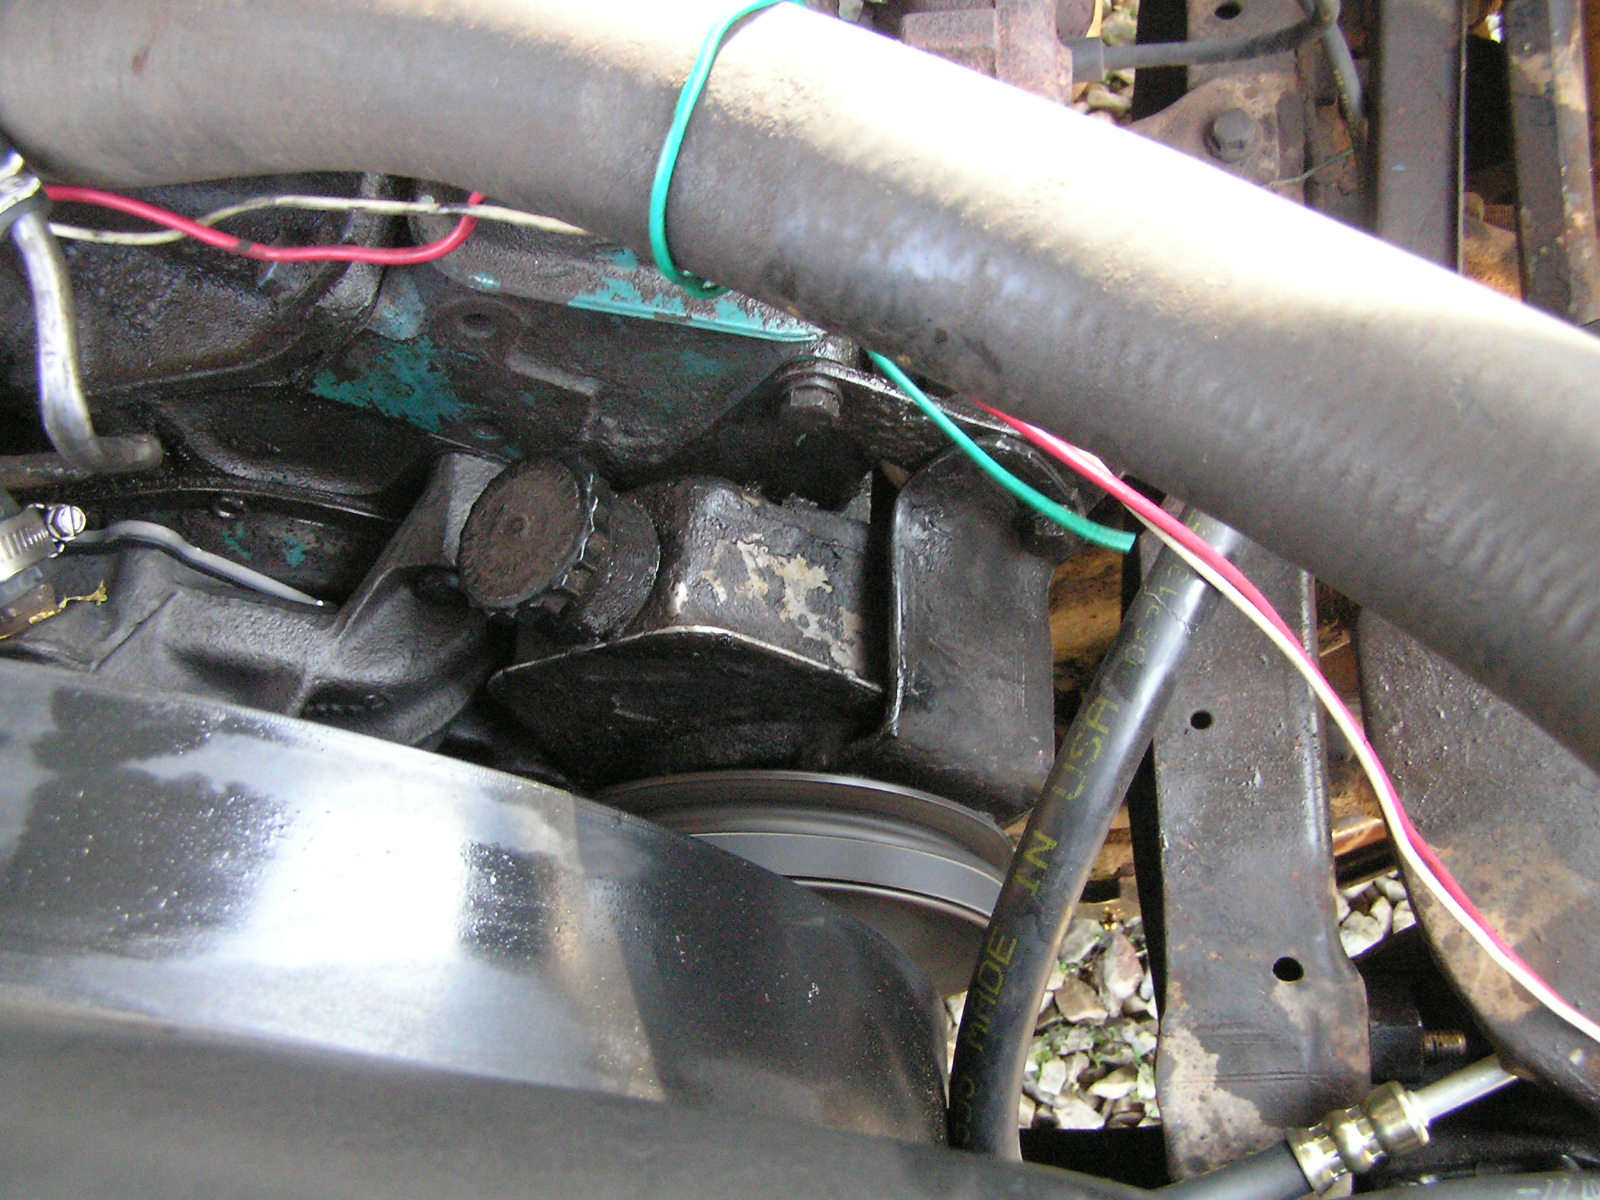 Watch besides 1977 Pontiac Trans Am Factory Fresh Part 1 as well 222136240427 together with 251050442972 moreover 302 Altbrkt Ewp 55. on alternator mounting kit